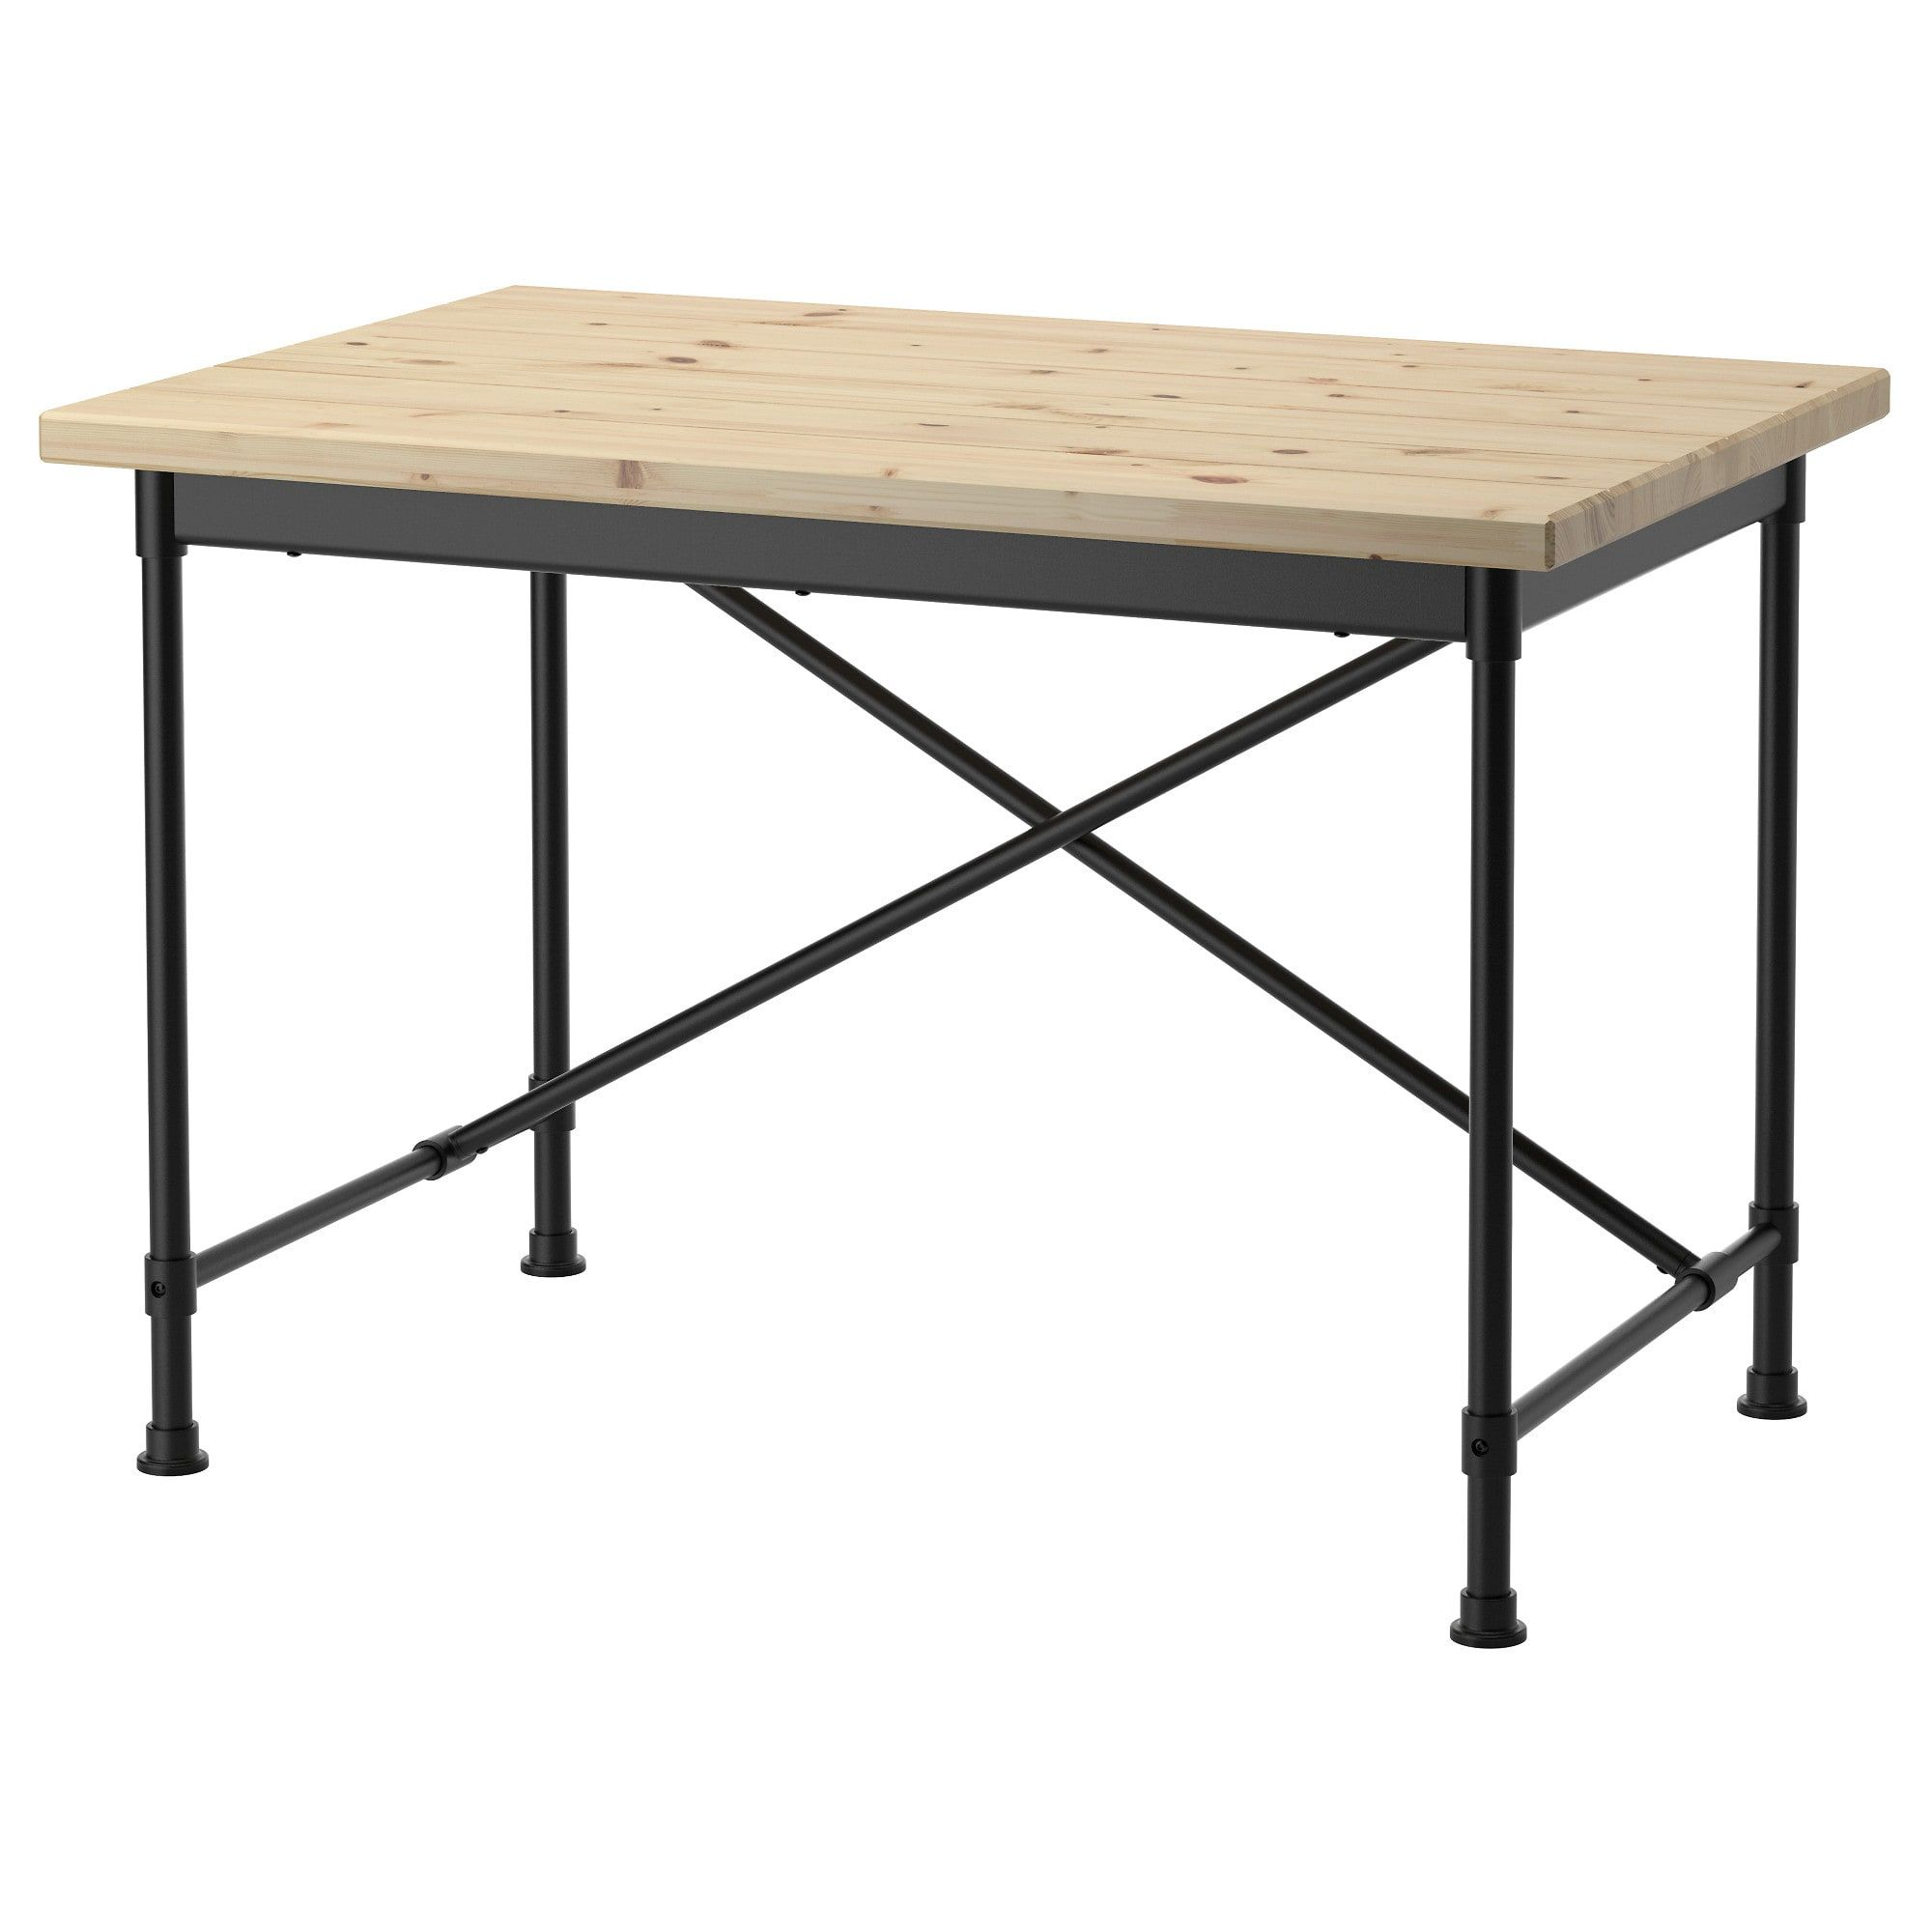 Ikea Table Ikea Kullaberg Pine Black Desk In 2019 Big Girl Office Ikea